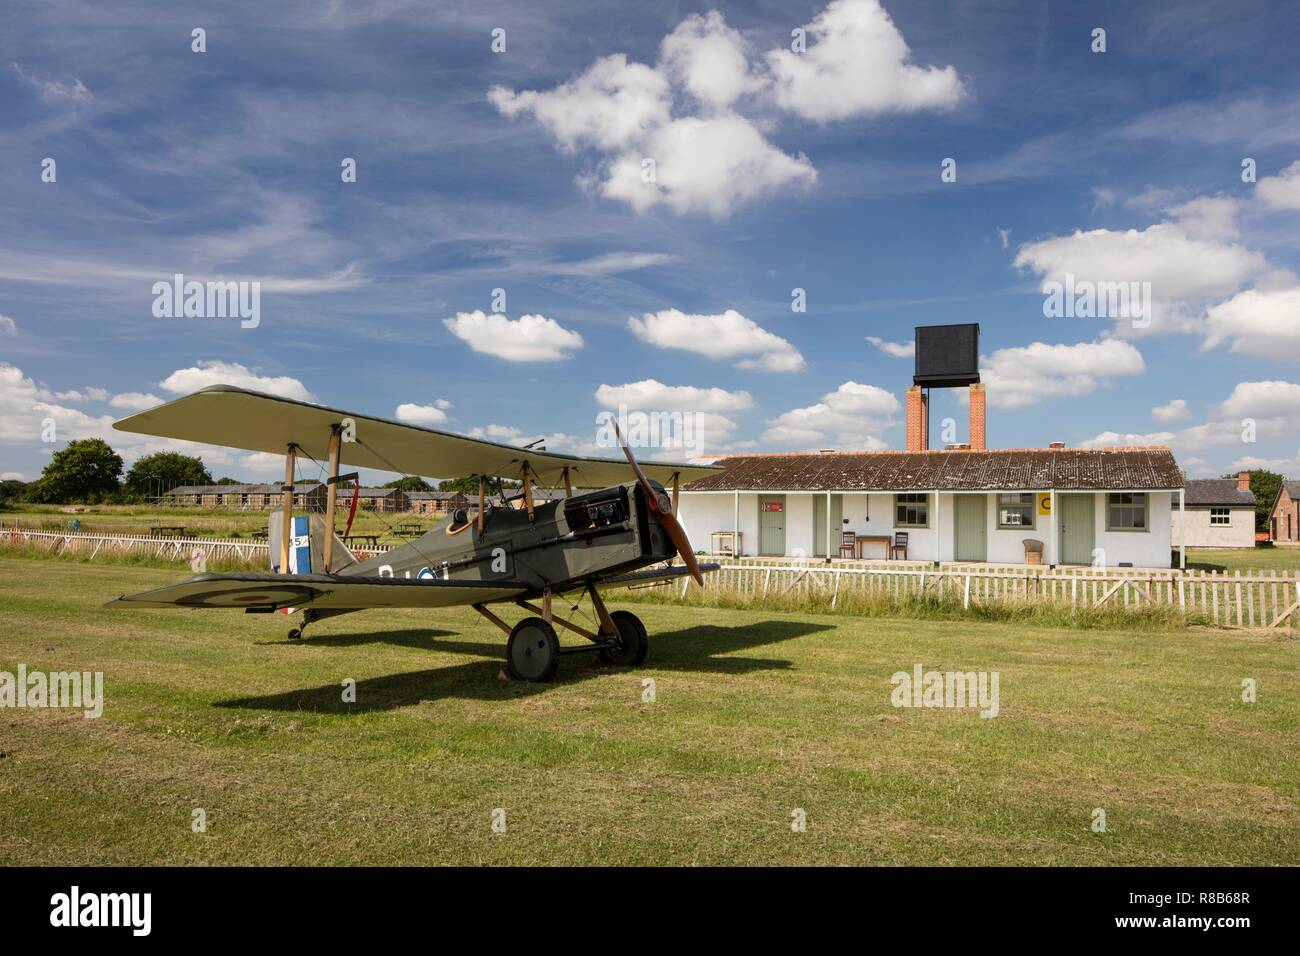 Stow Maries Aerodrome, Maldon, Essex, 2017. General view of the airfield site from the north-east, with a replica World War One aircraft in the foregr - Stock Image